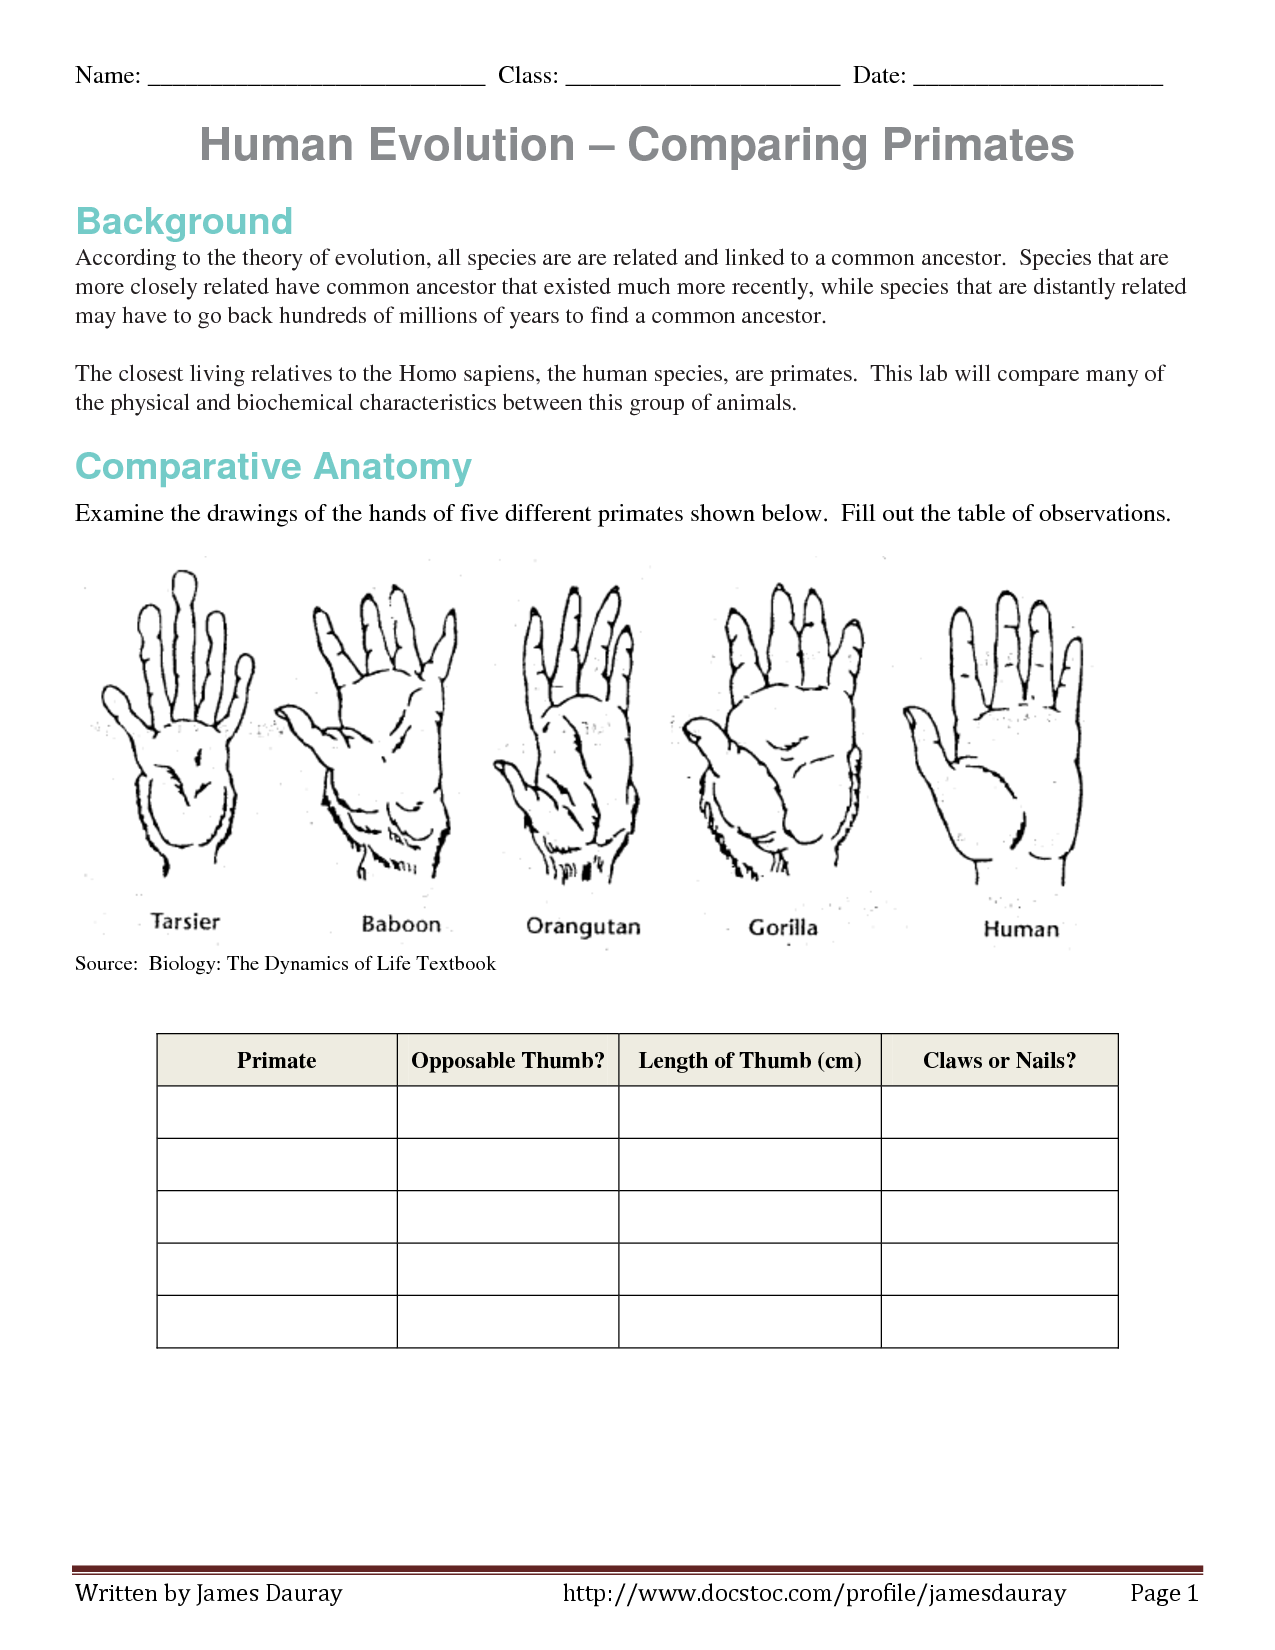 Worksheets Evolution Worksheet evolution of human thumb evidence worksheet comparing primates by